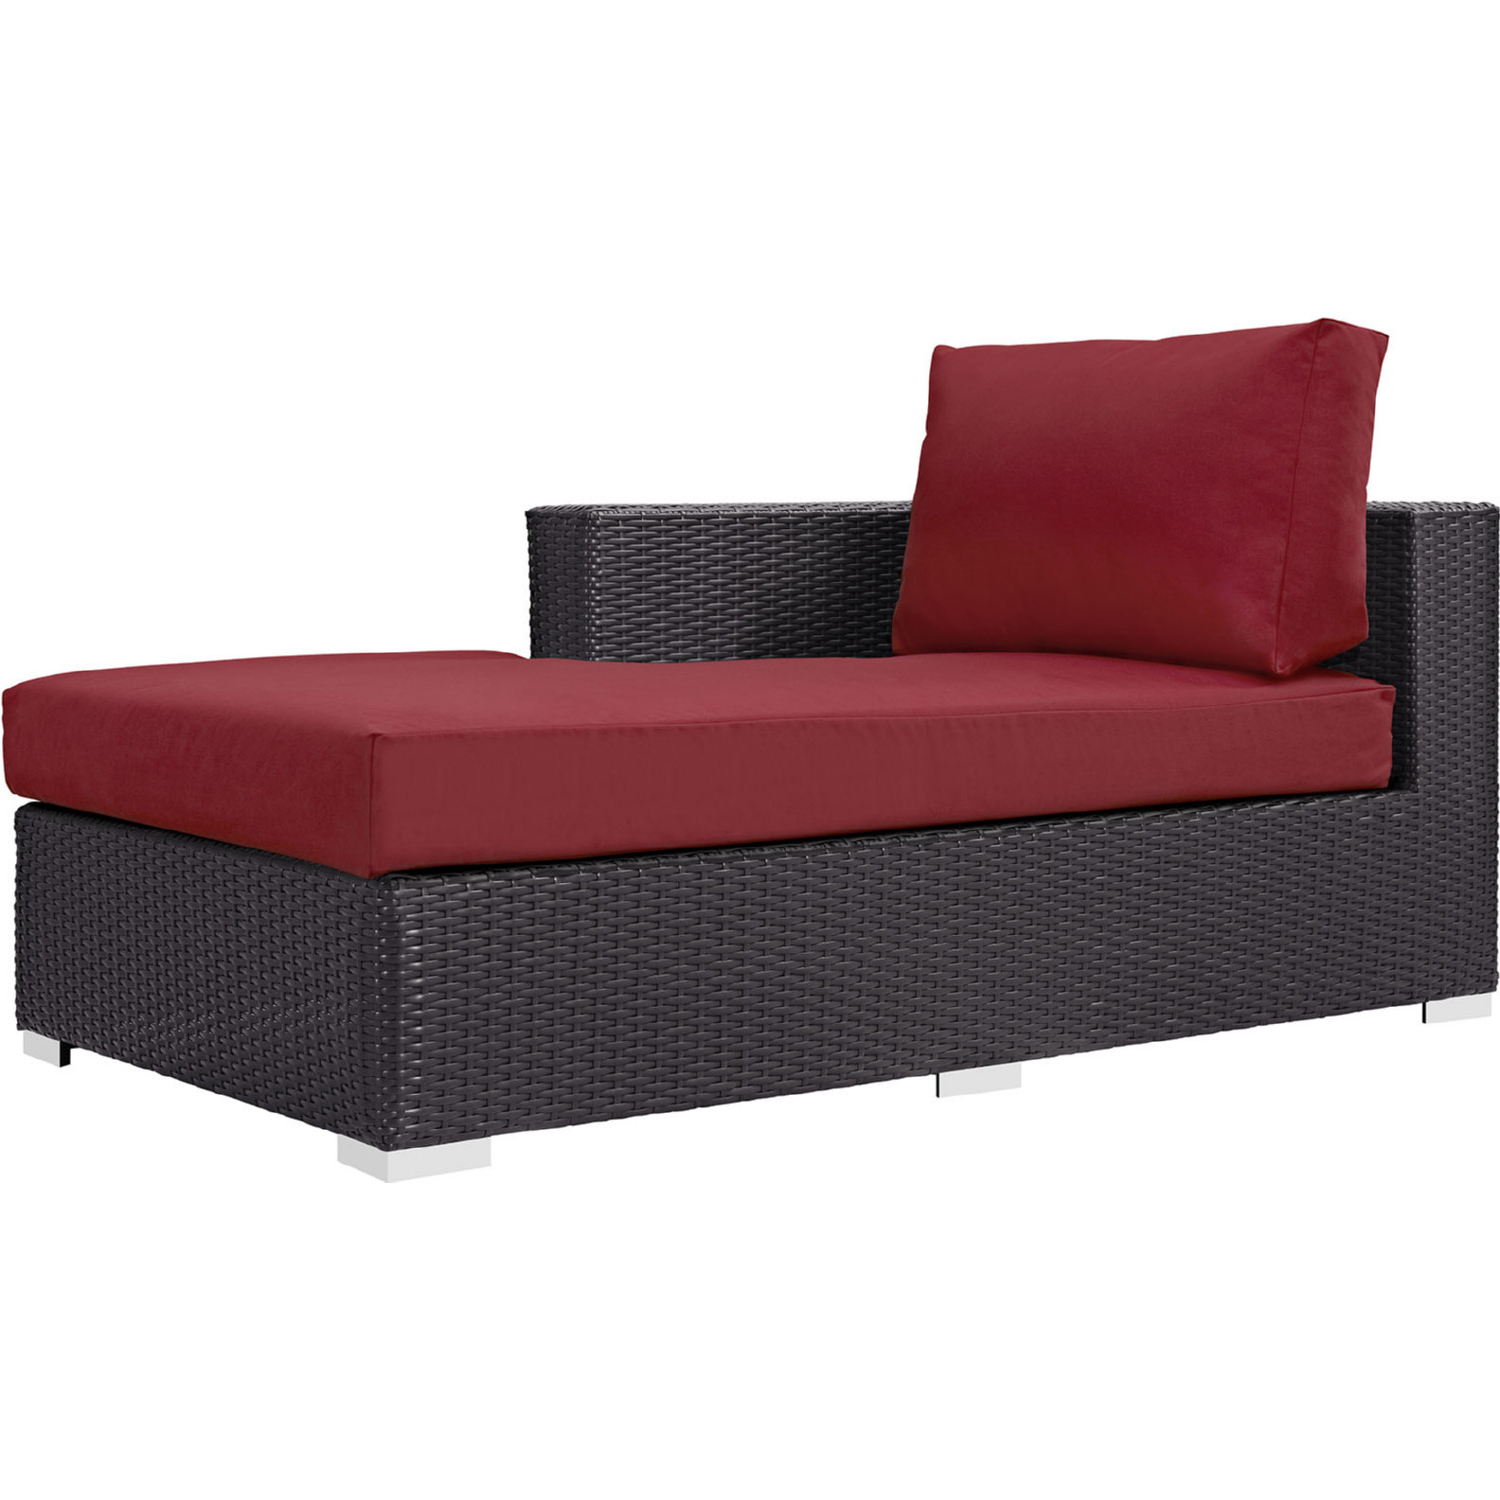 Envisage Chaise Outdoor Patio Wicker Rattan Lounge Chairs Inside Most Recent Patio Furniture Chaise / Lounge Chairs (Gallery 17 of 25)